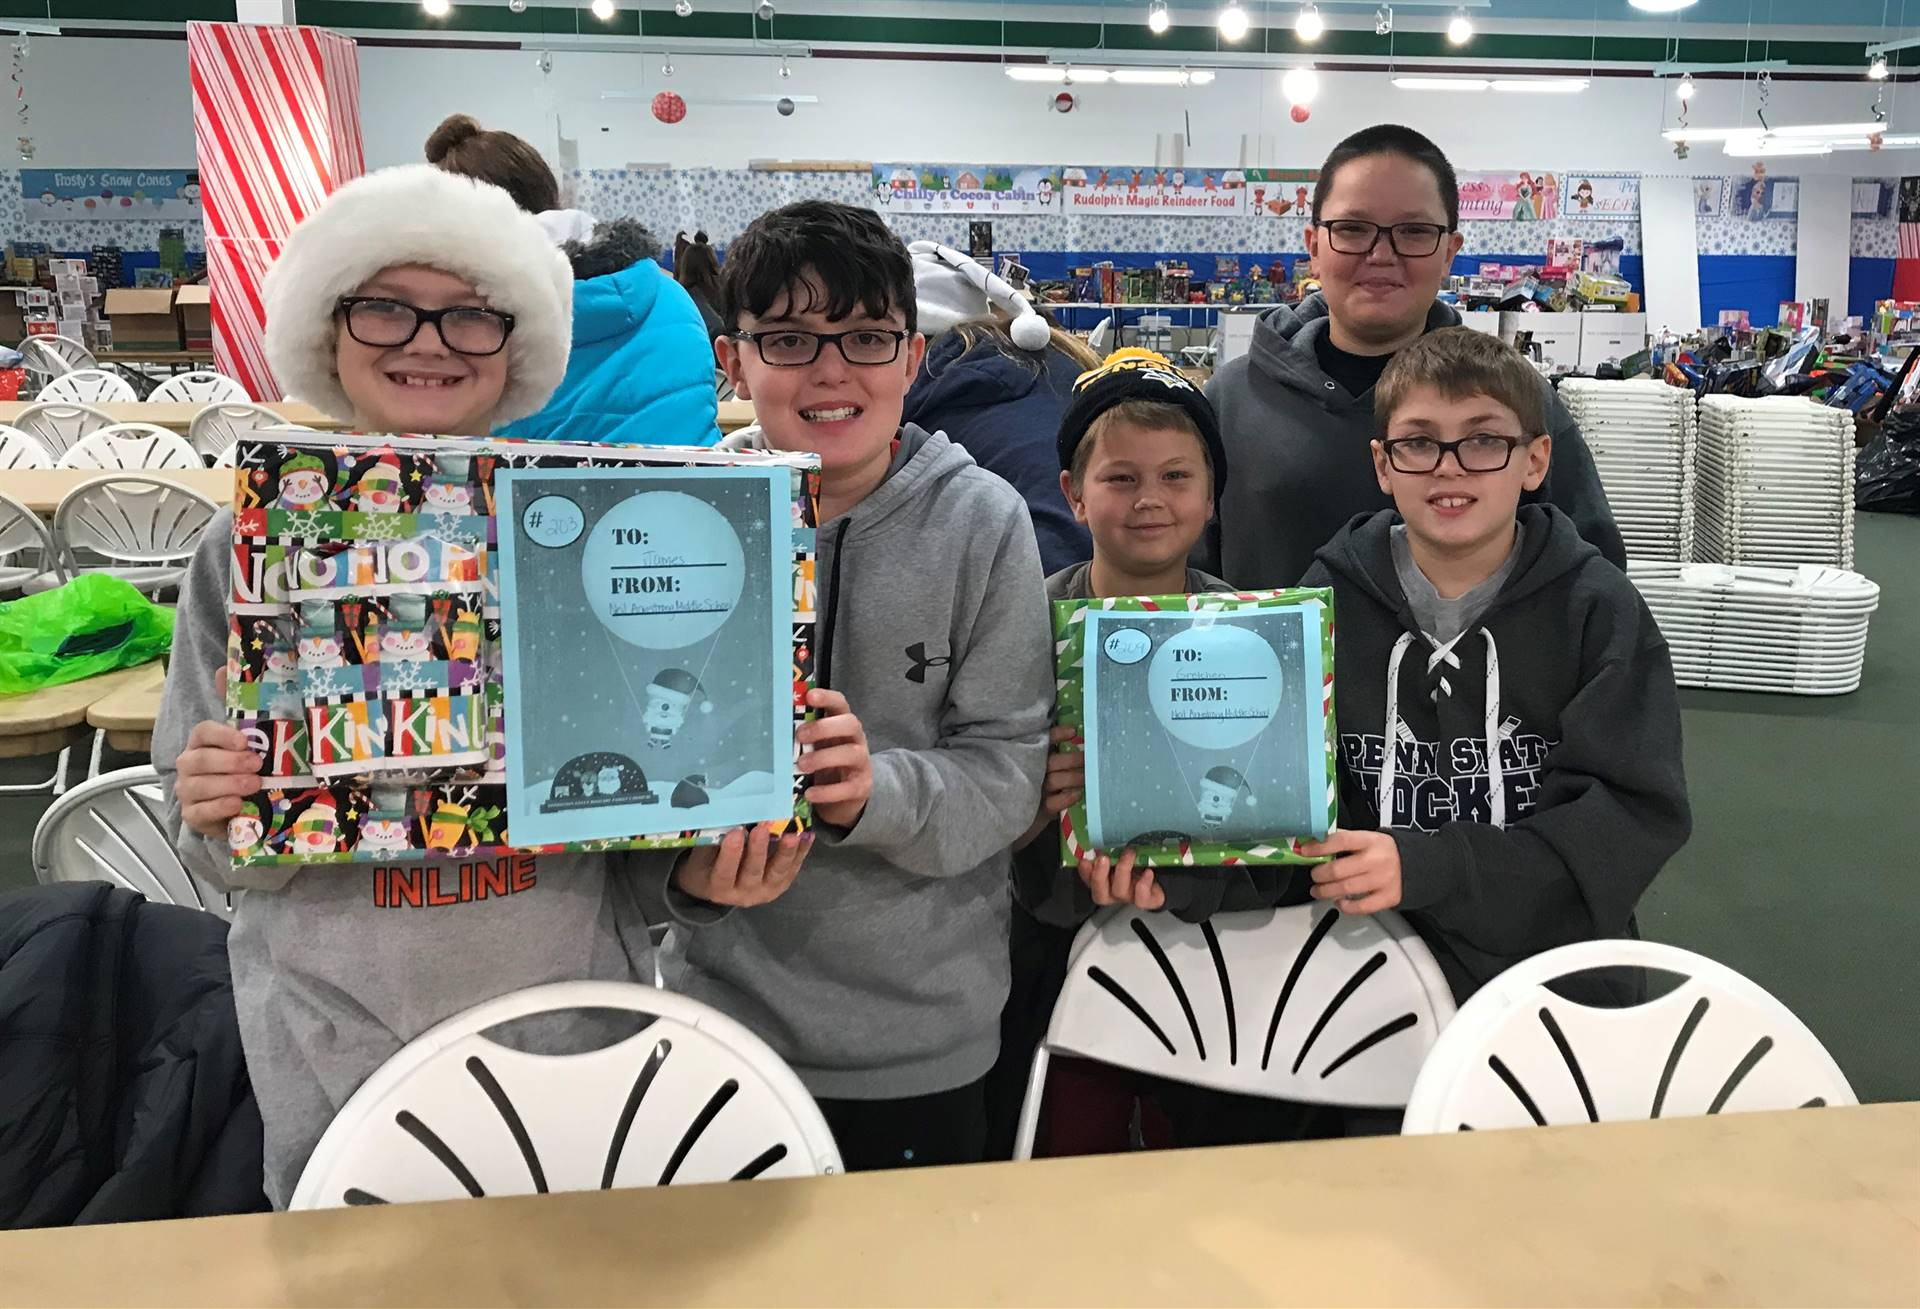 Team Eclipse students on their Operation Santa Shopping Trip